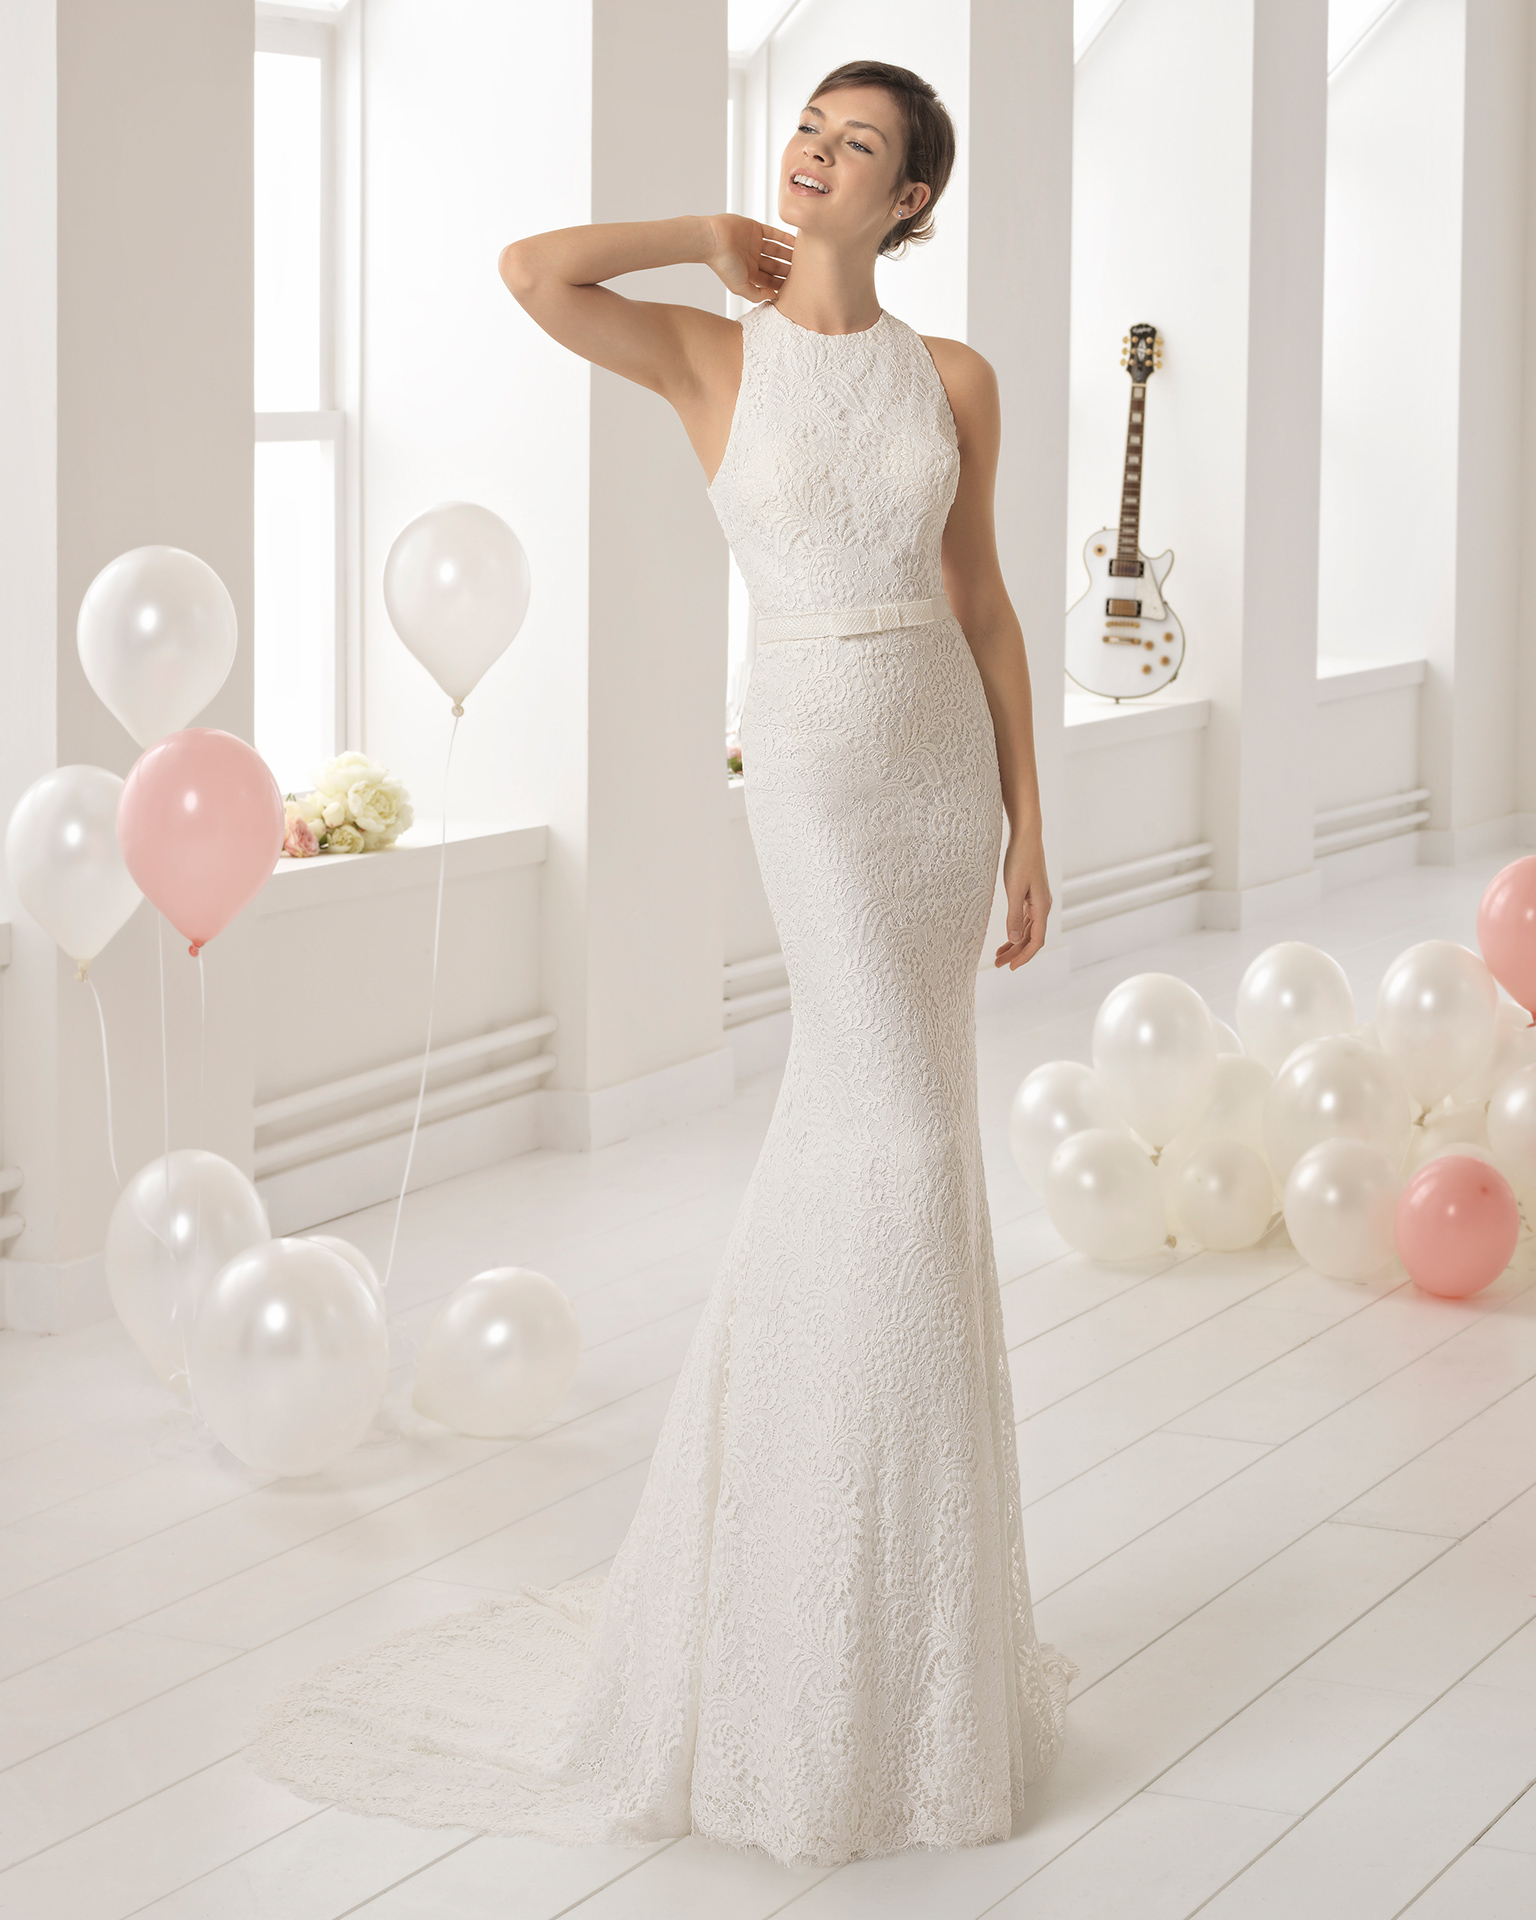 Beaded lace sheath wedding dress with halter neckline and crossover back.